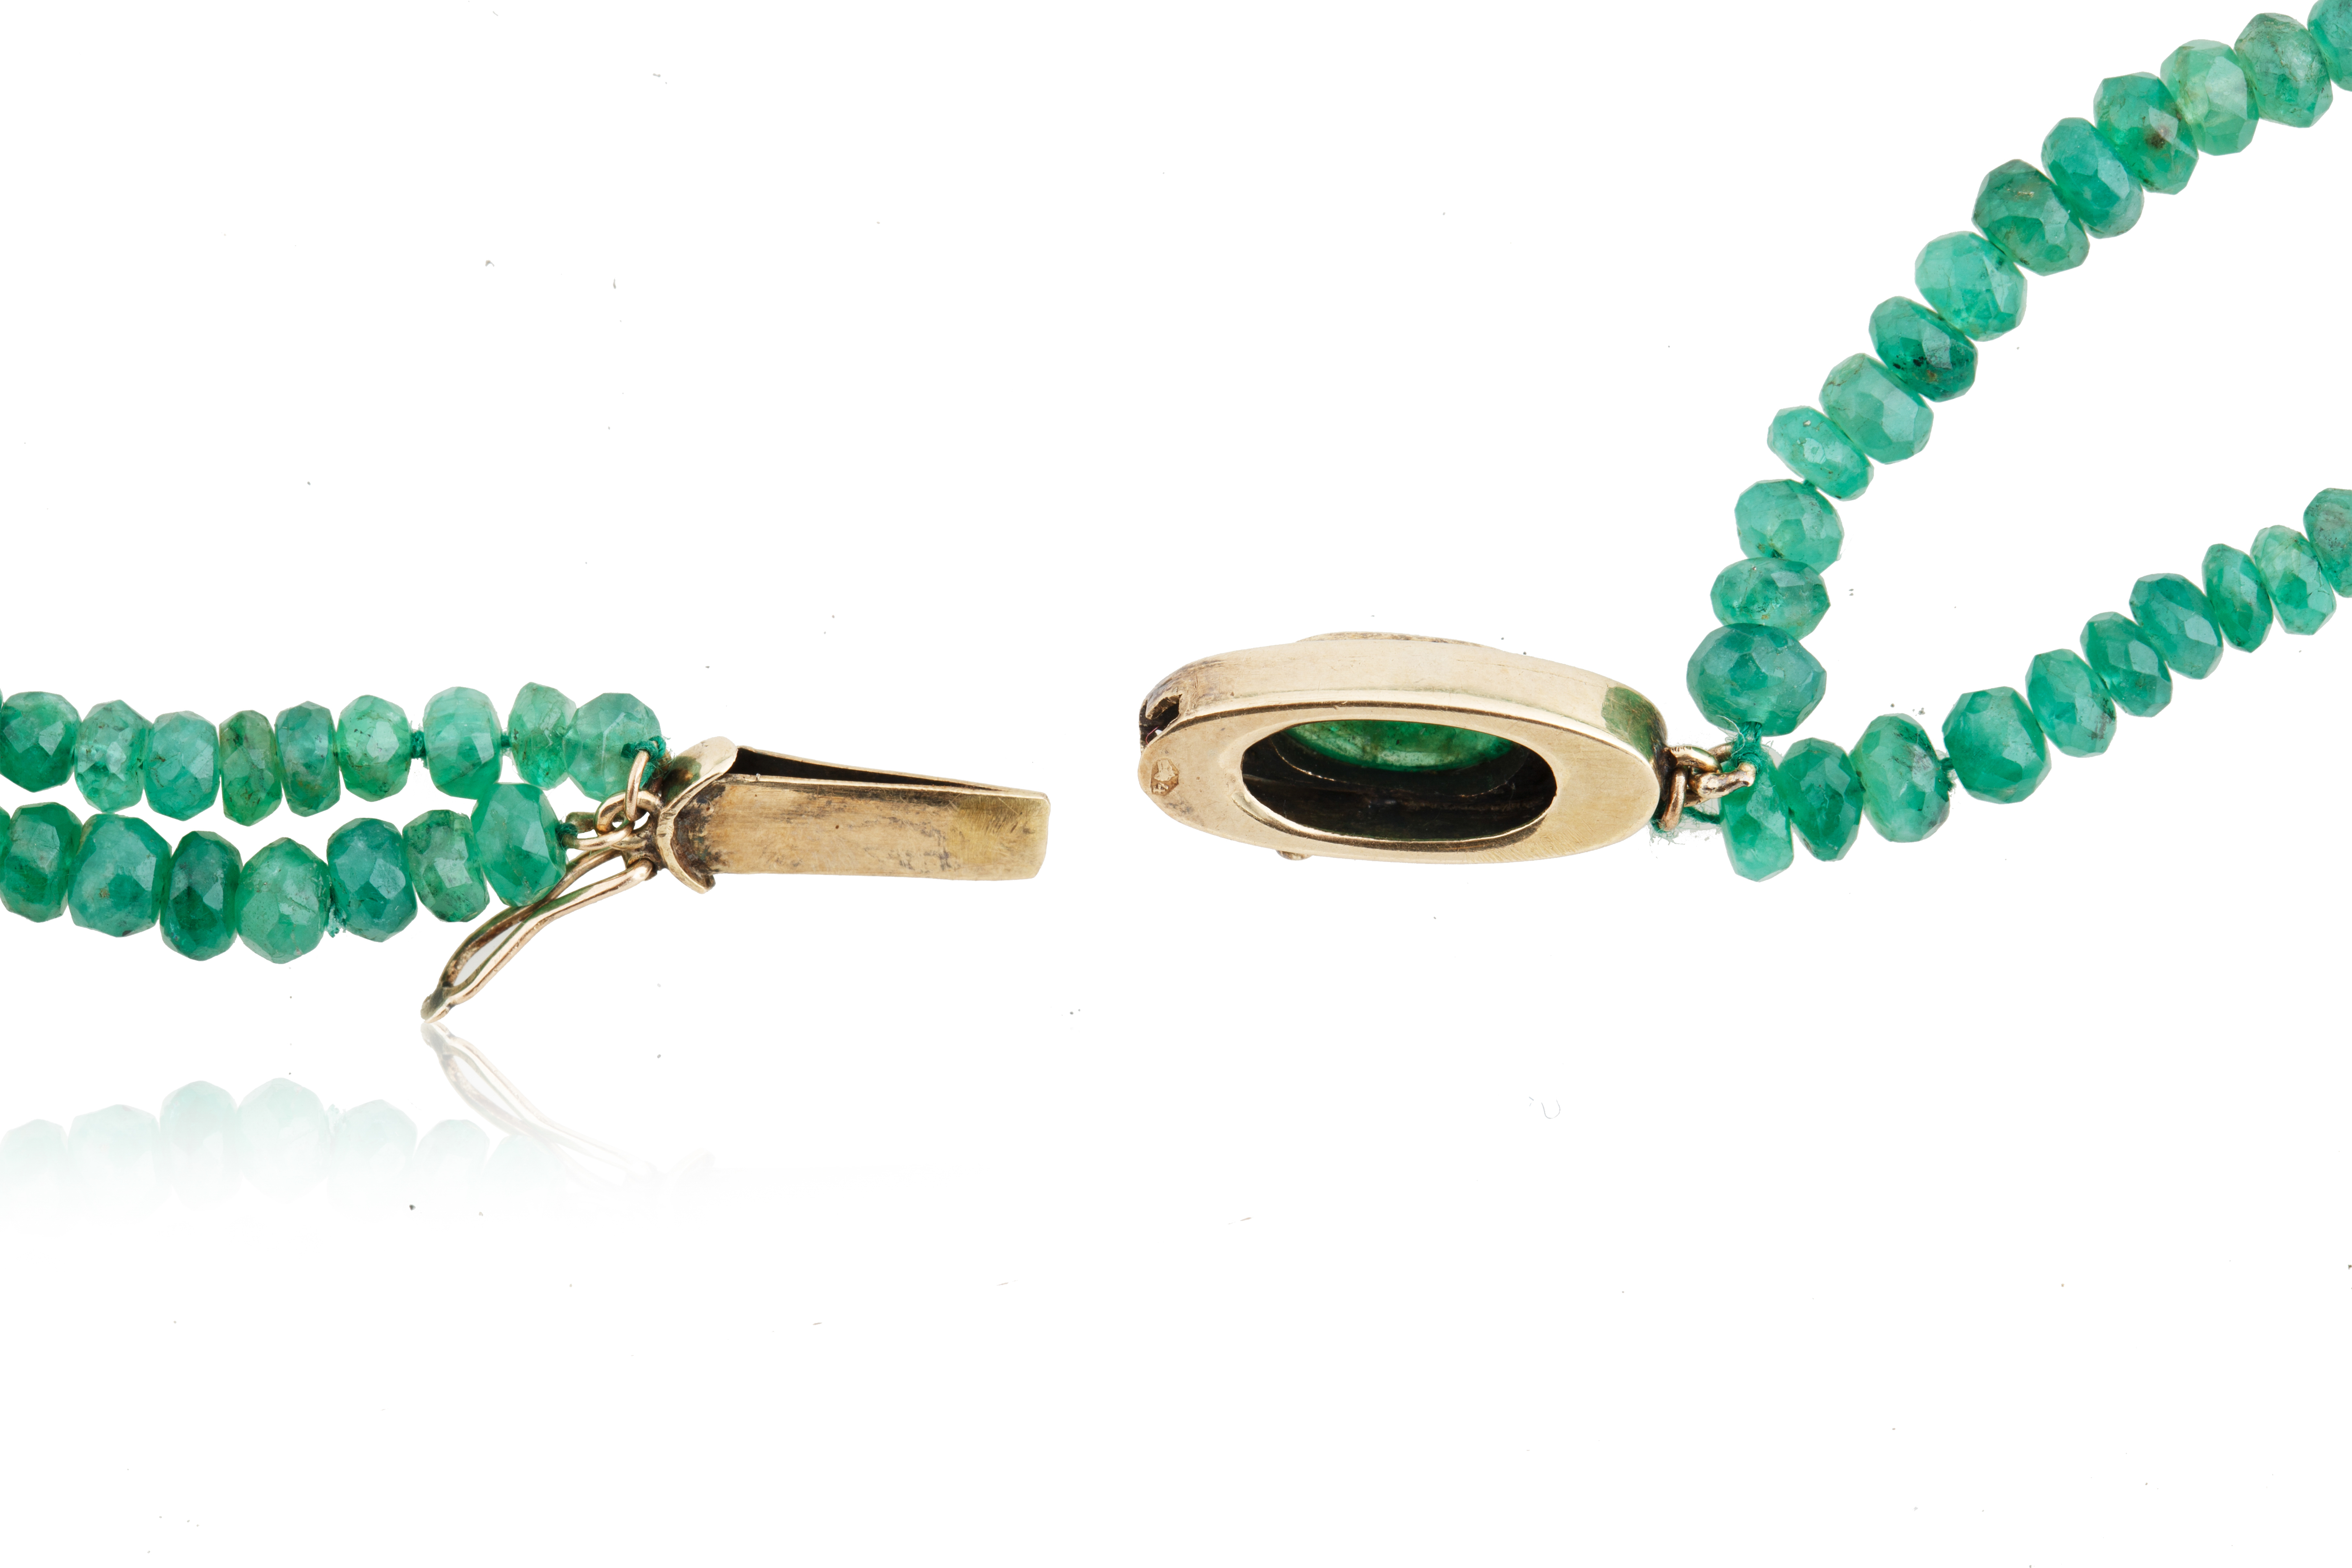 AN EMERALD, DIAMOND AND JADEITE BEADED NECKLACE, LIKELY FRENCH - Image 3 of 5